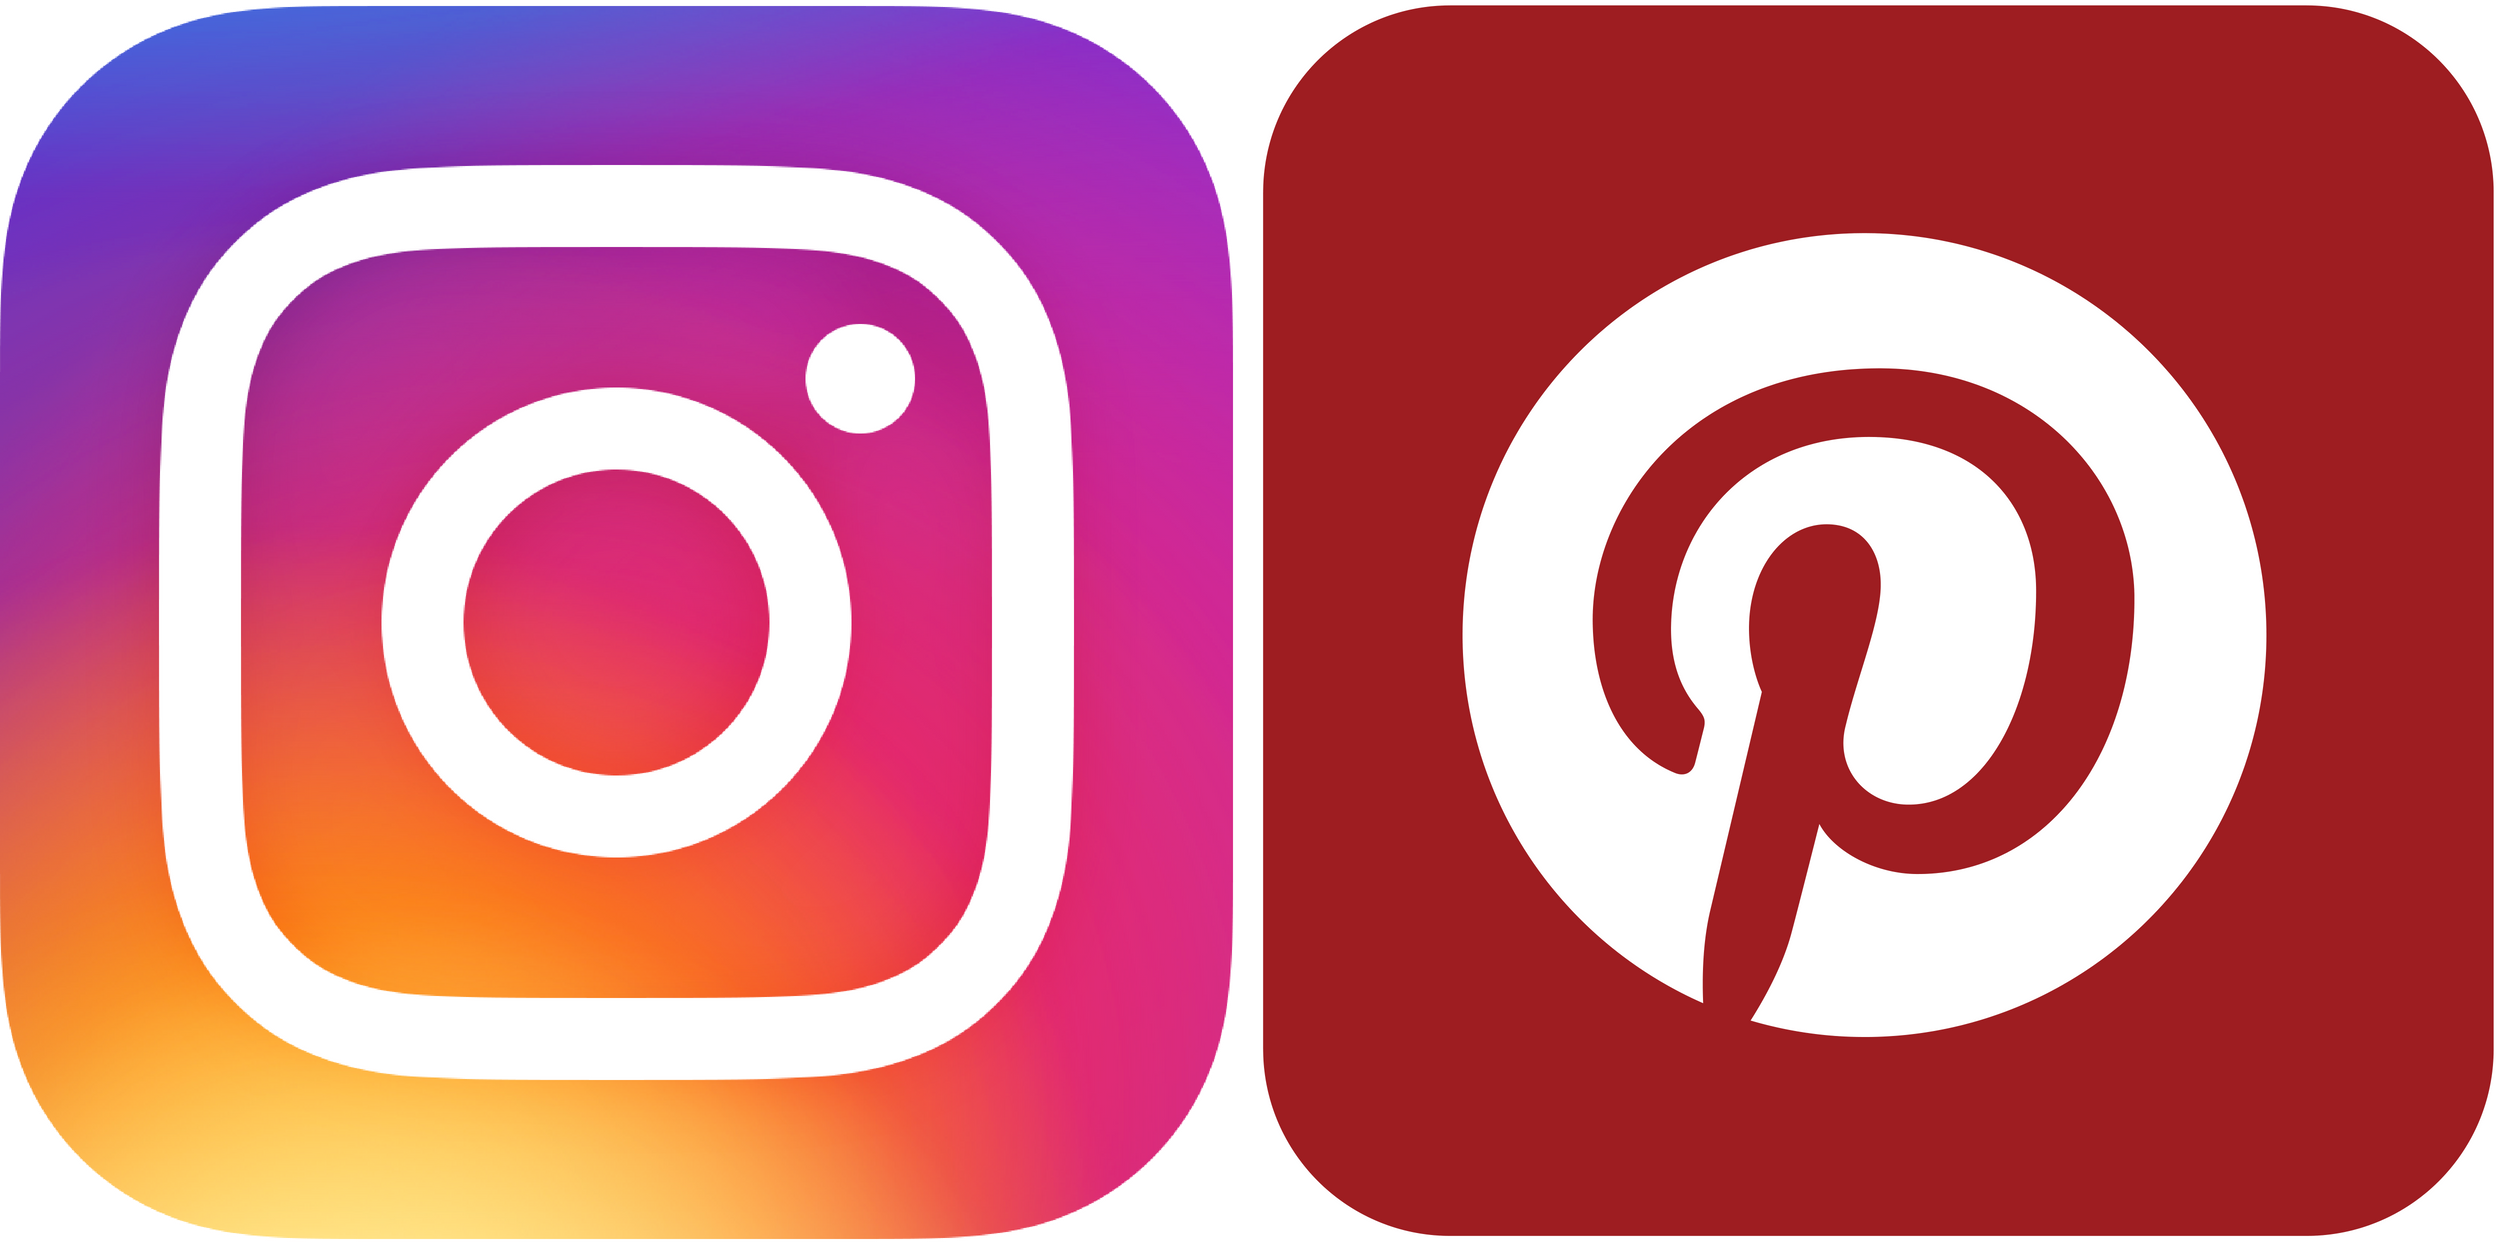 Whats The Difference Between Instagram And Pinterest Felicia Lin Symbols Electronics On